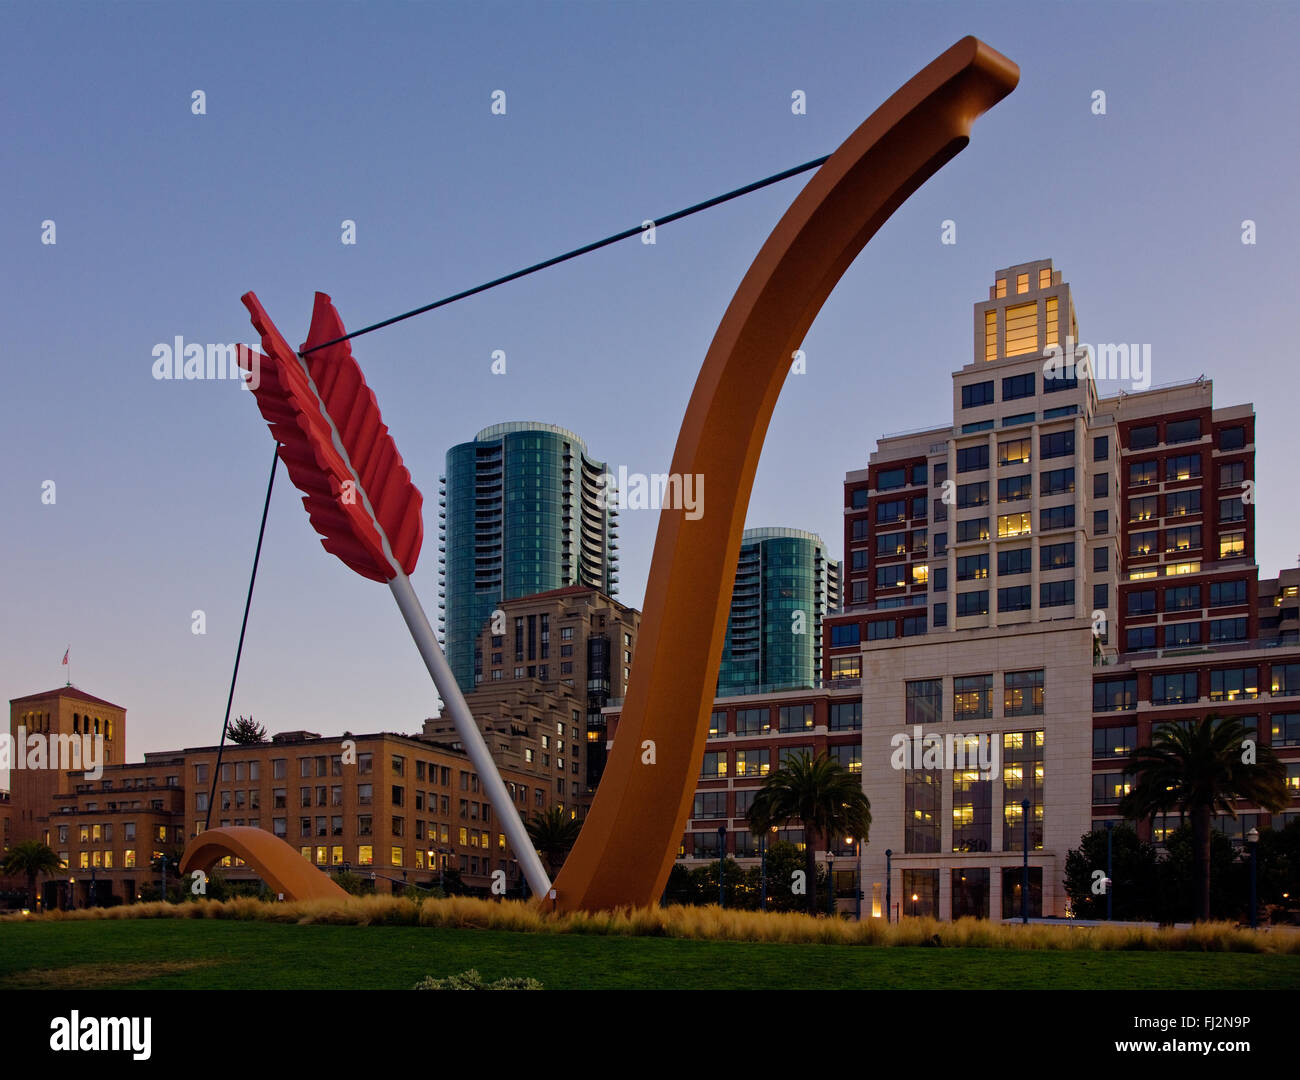 CITYSCAPE and Claes Oldenburgs sculpture titled CUPIDS SPAN in RINCON PARK on THE EMBARCADERO - SAN FRANCISCO, CALIFORNIA - Stock Image